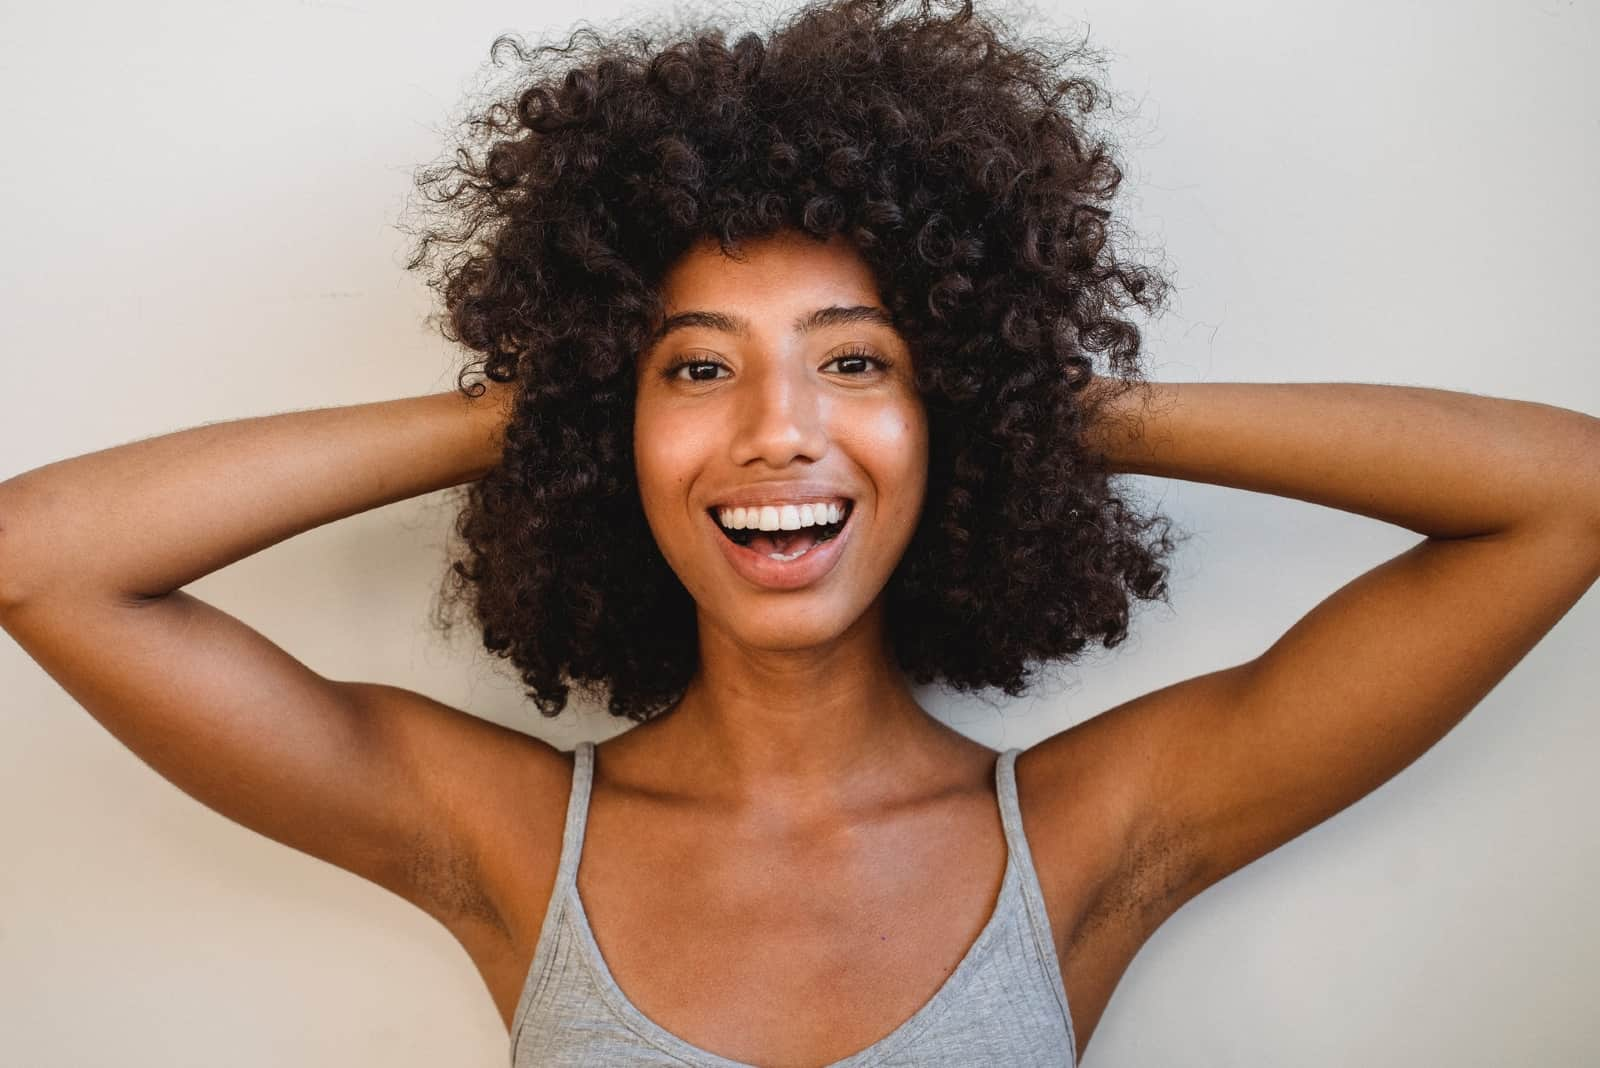 happy woman with curly hair standing near wall